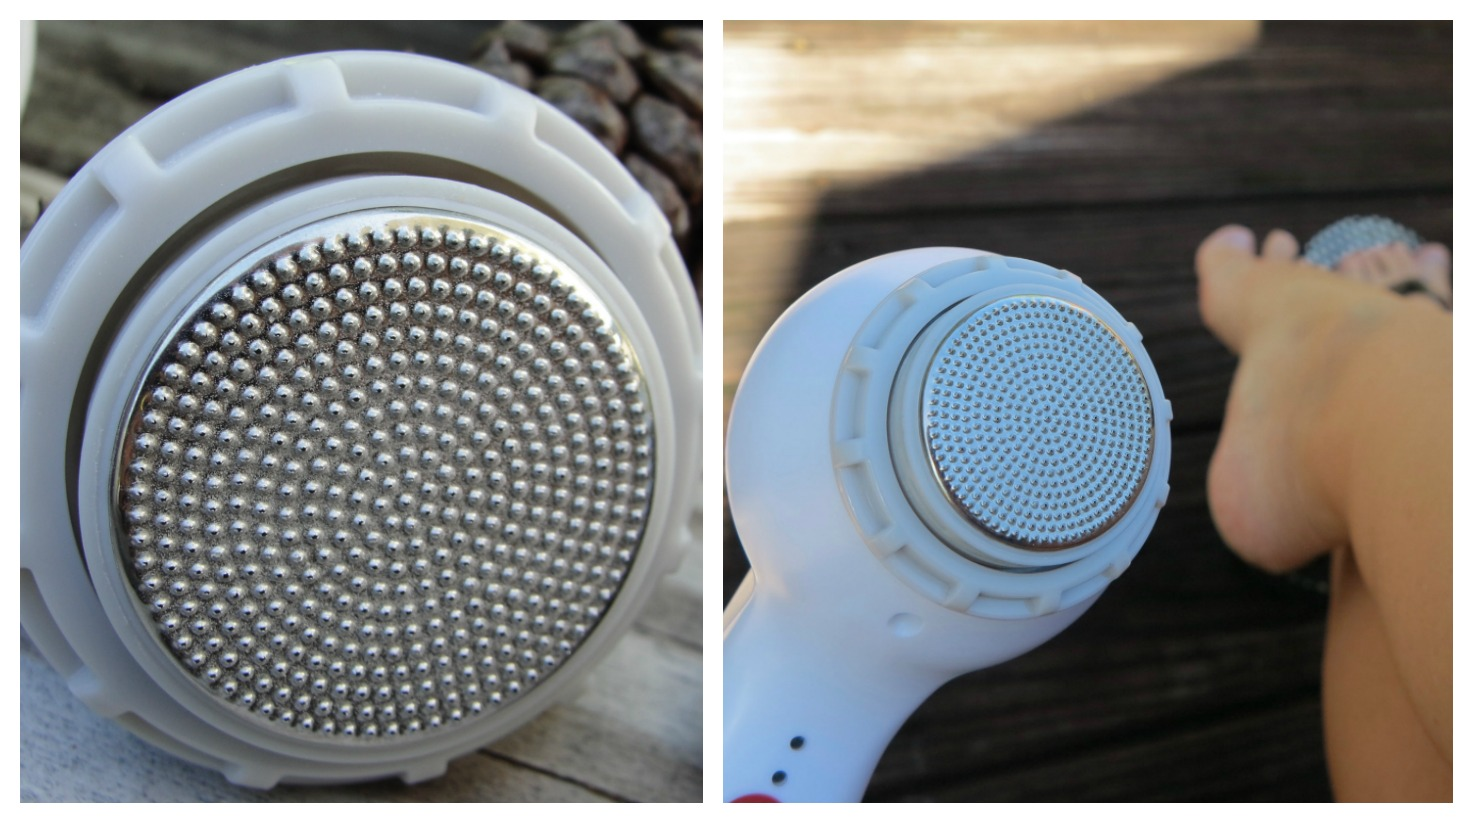 Soniclear Deluxe Clarisonic Mia 2 Dupe For Under 100